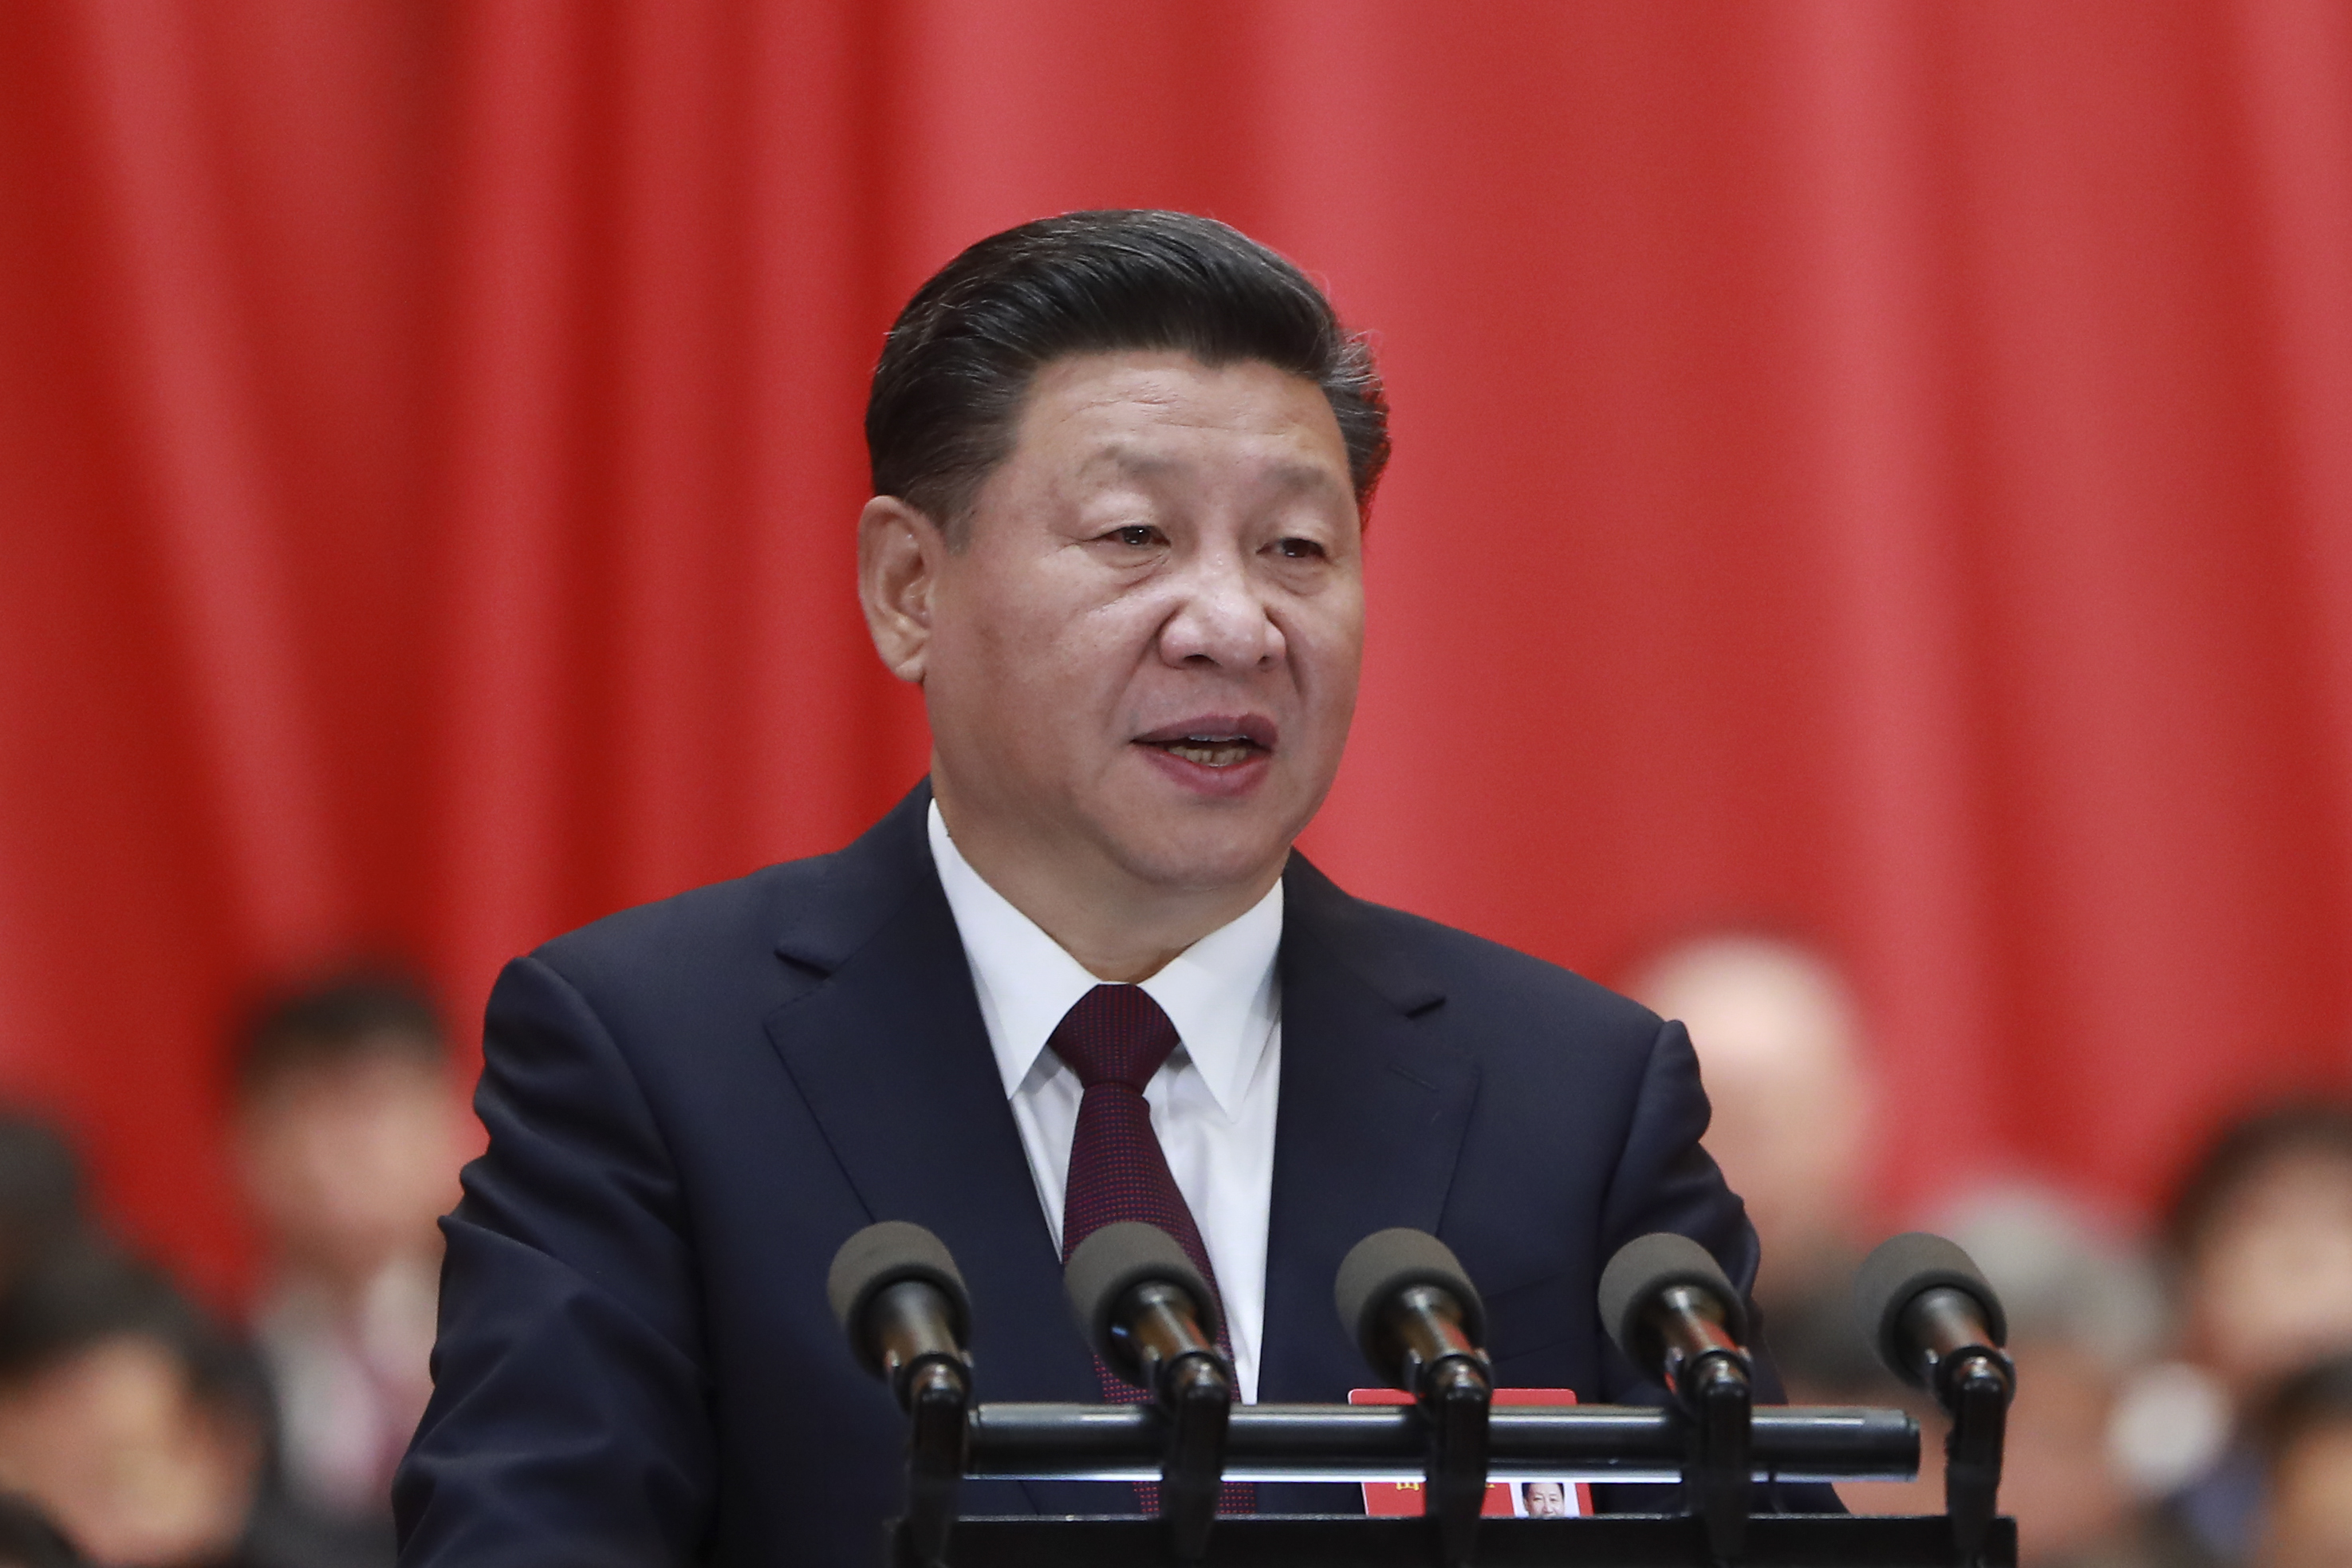 General Secretary Xi Jinping delivers a report at the opening ceremony of the 19th National Congress of the Communist Party of China (CPC) at Great Hall of the People on October 18, 2017 in Beijing, China.